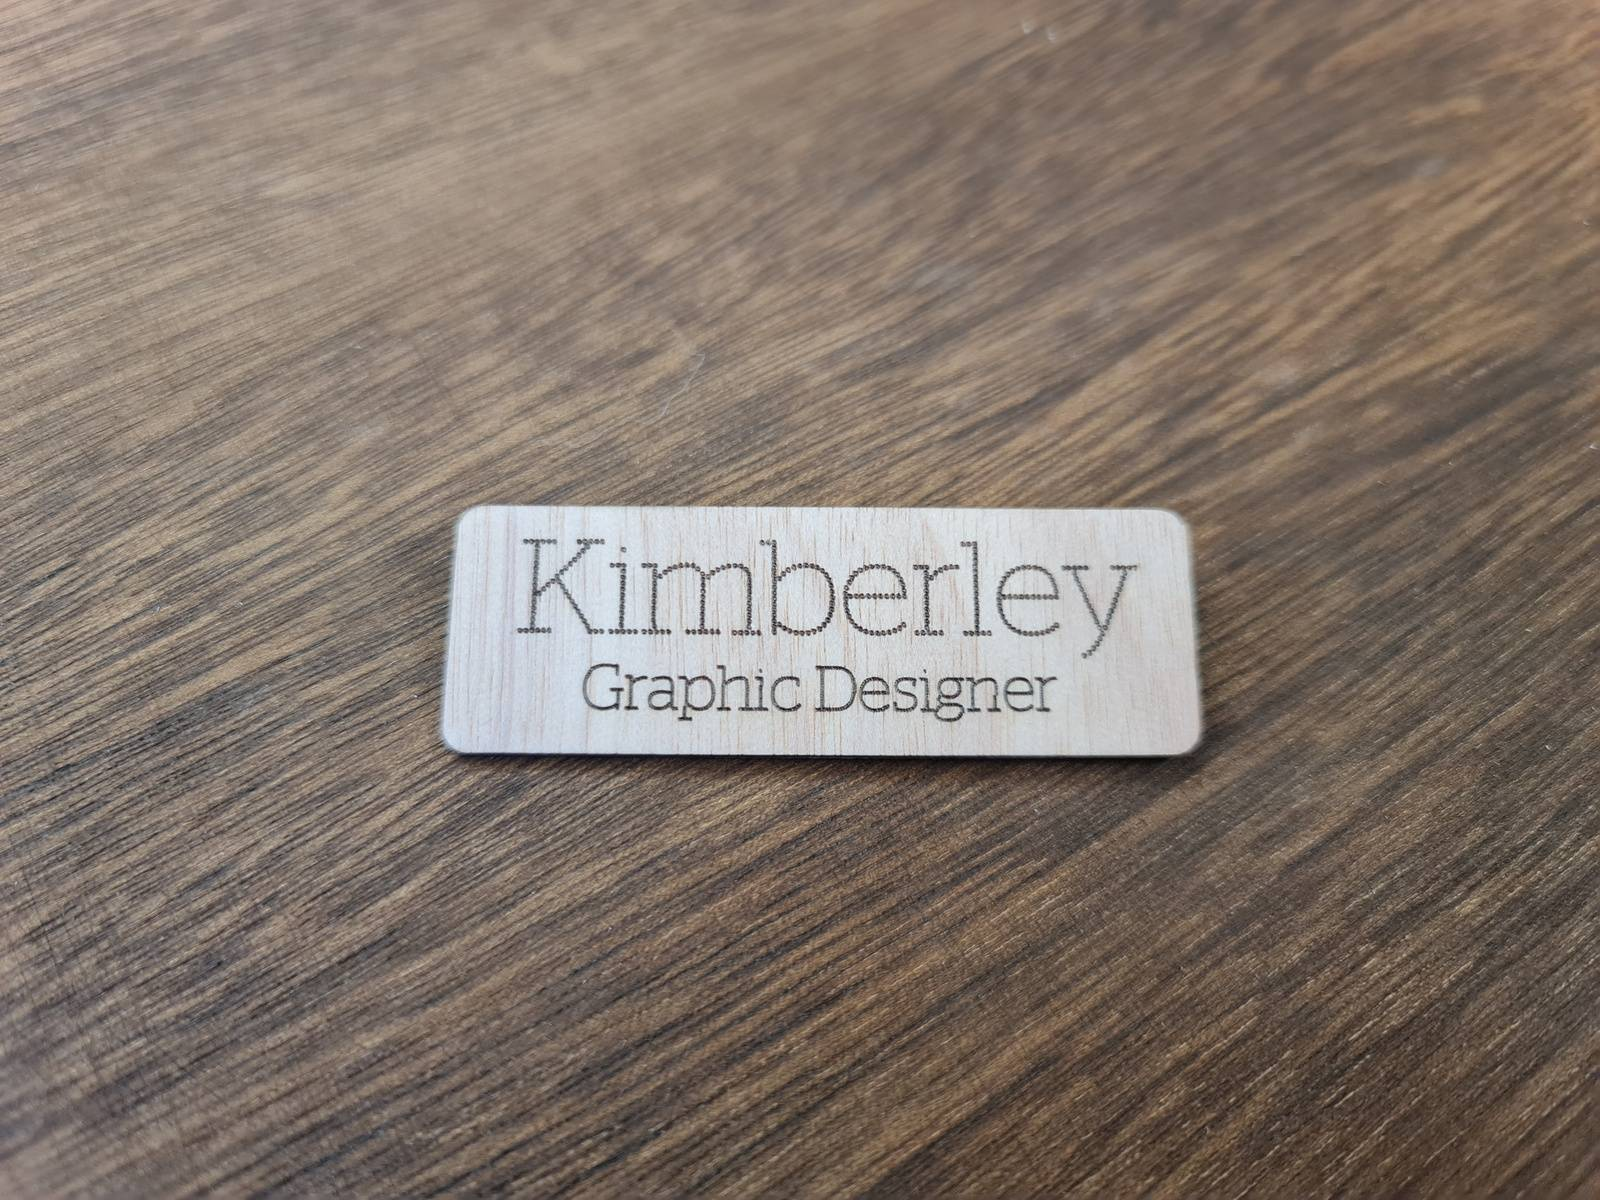 Wooden Engraved Name Badge with Name and Title